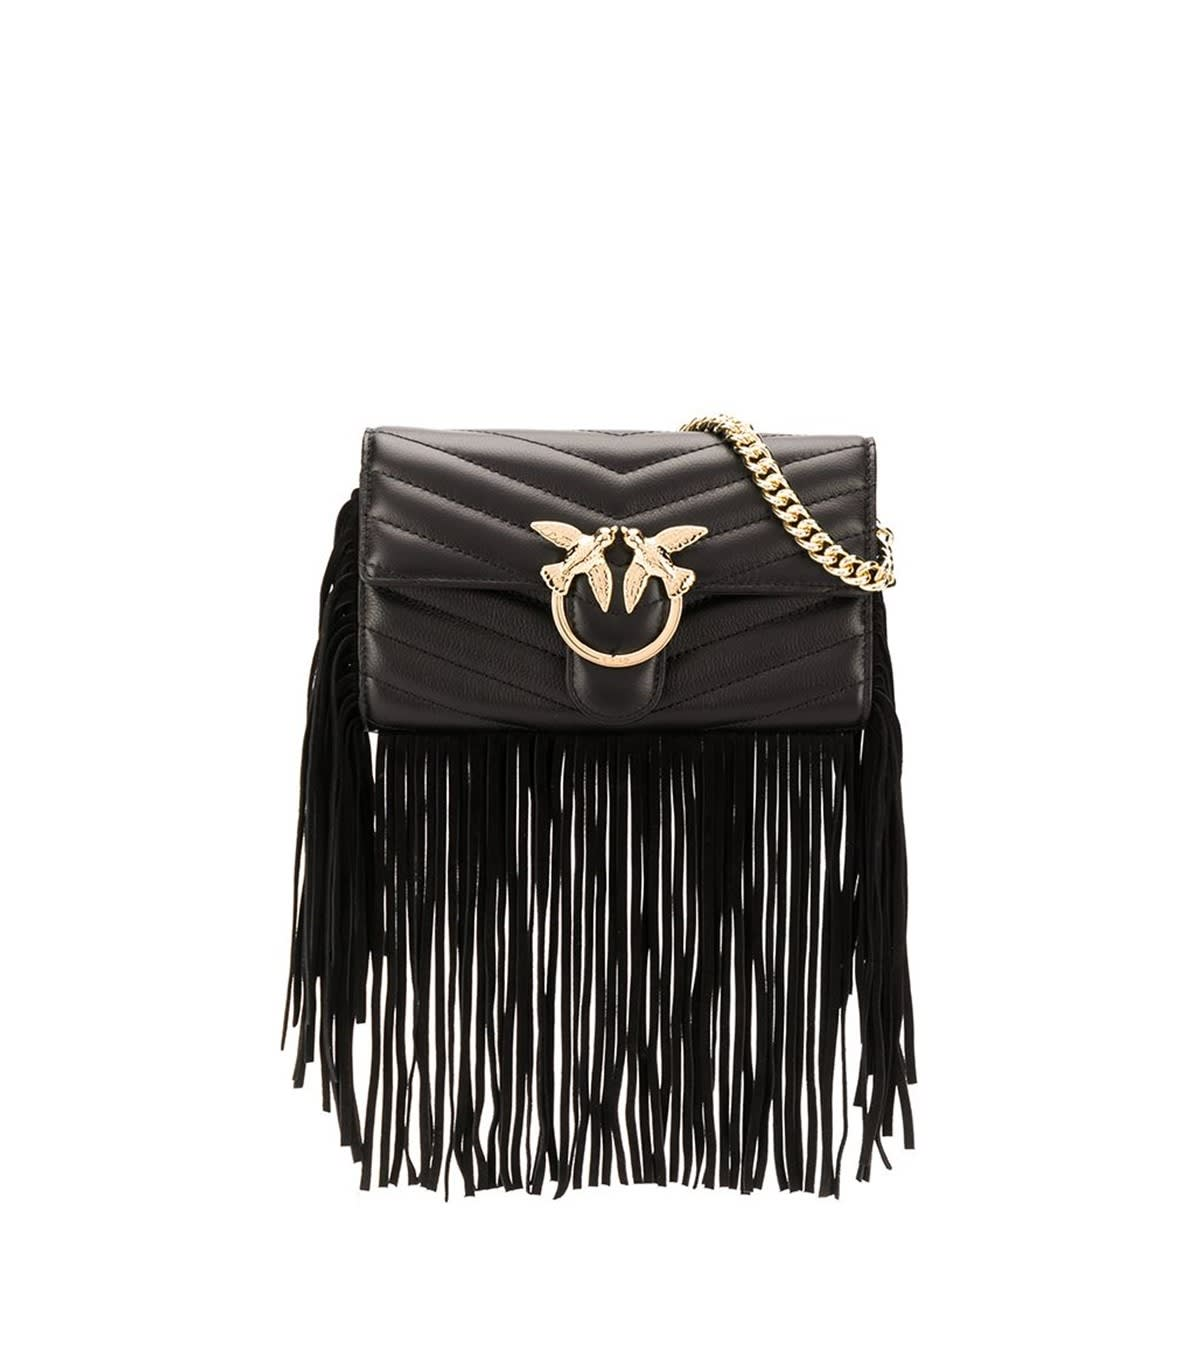 Pinko Black Love Wallet Fringes Wallet With Chain